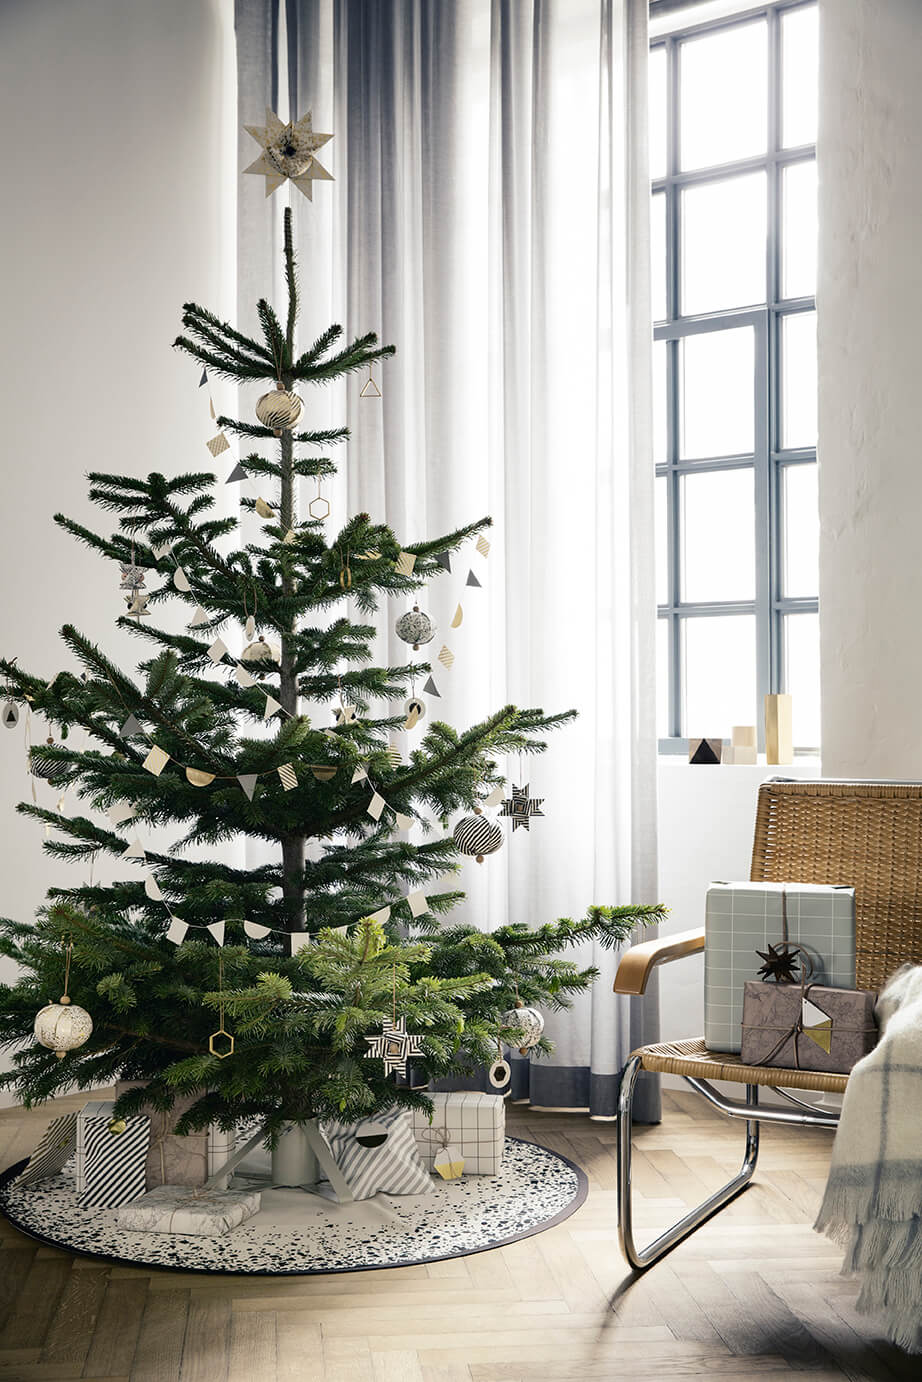 Chic Modern Minimalist Christmas Trees | Best Way to Decorate Christmas Trees on a Budget: Inexpensive or Free & Easy Holiday Ornaments & Decorations